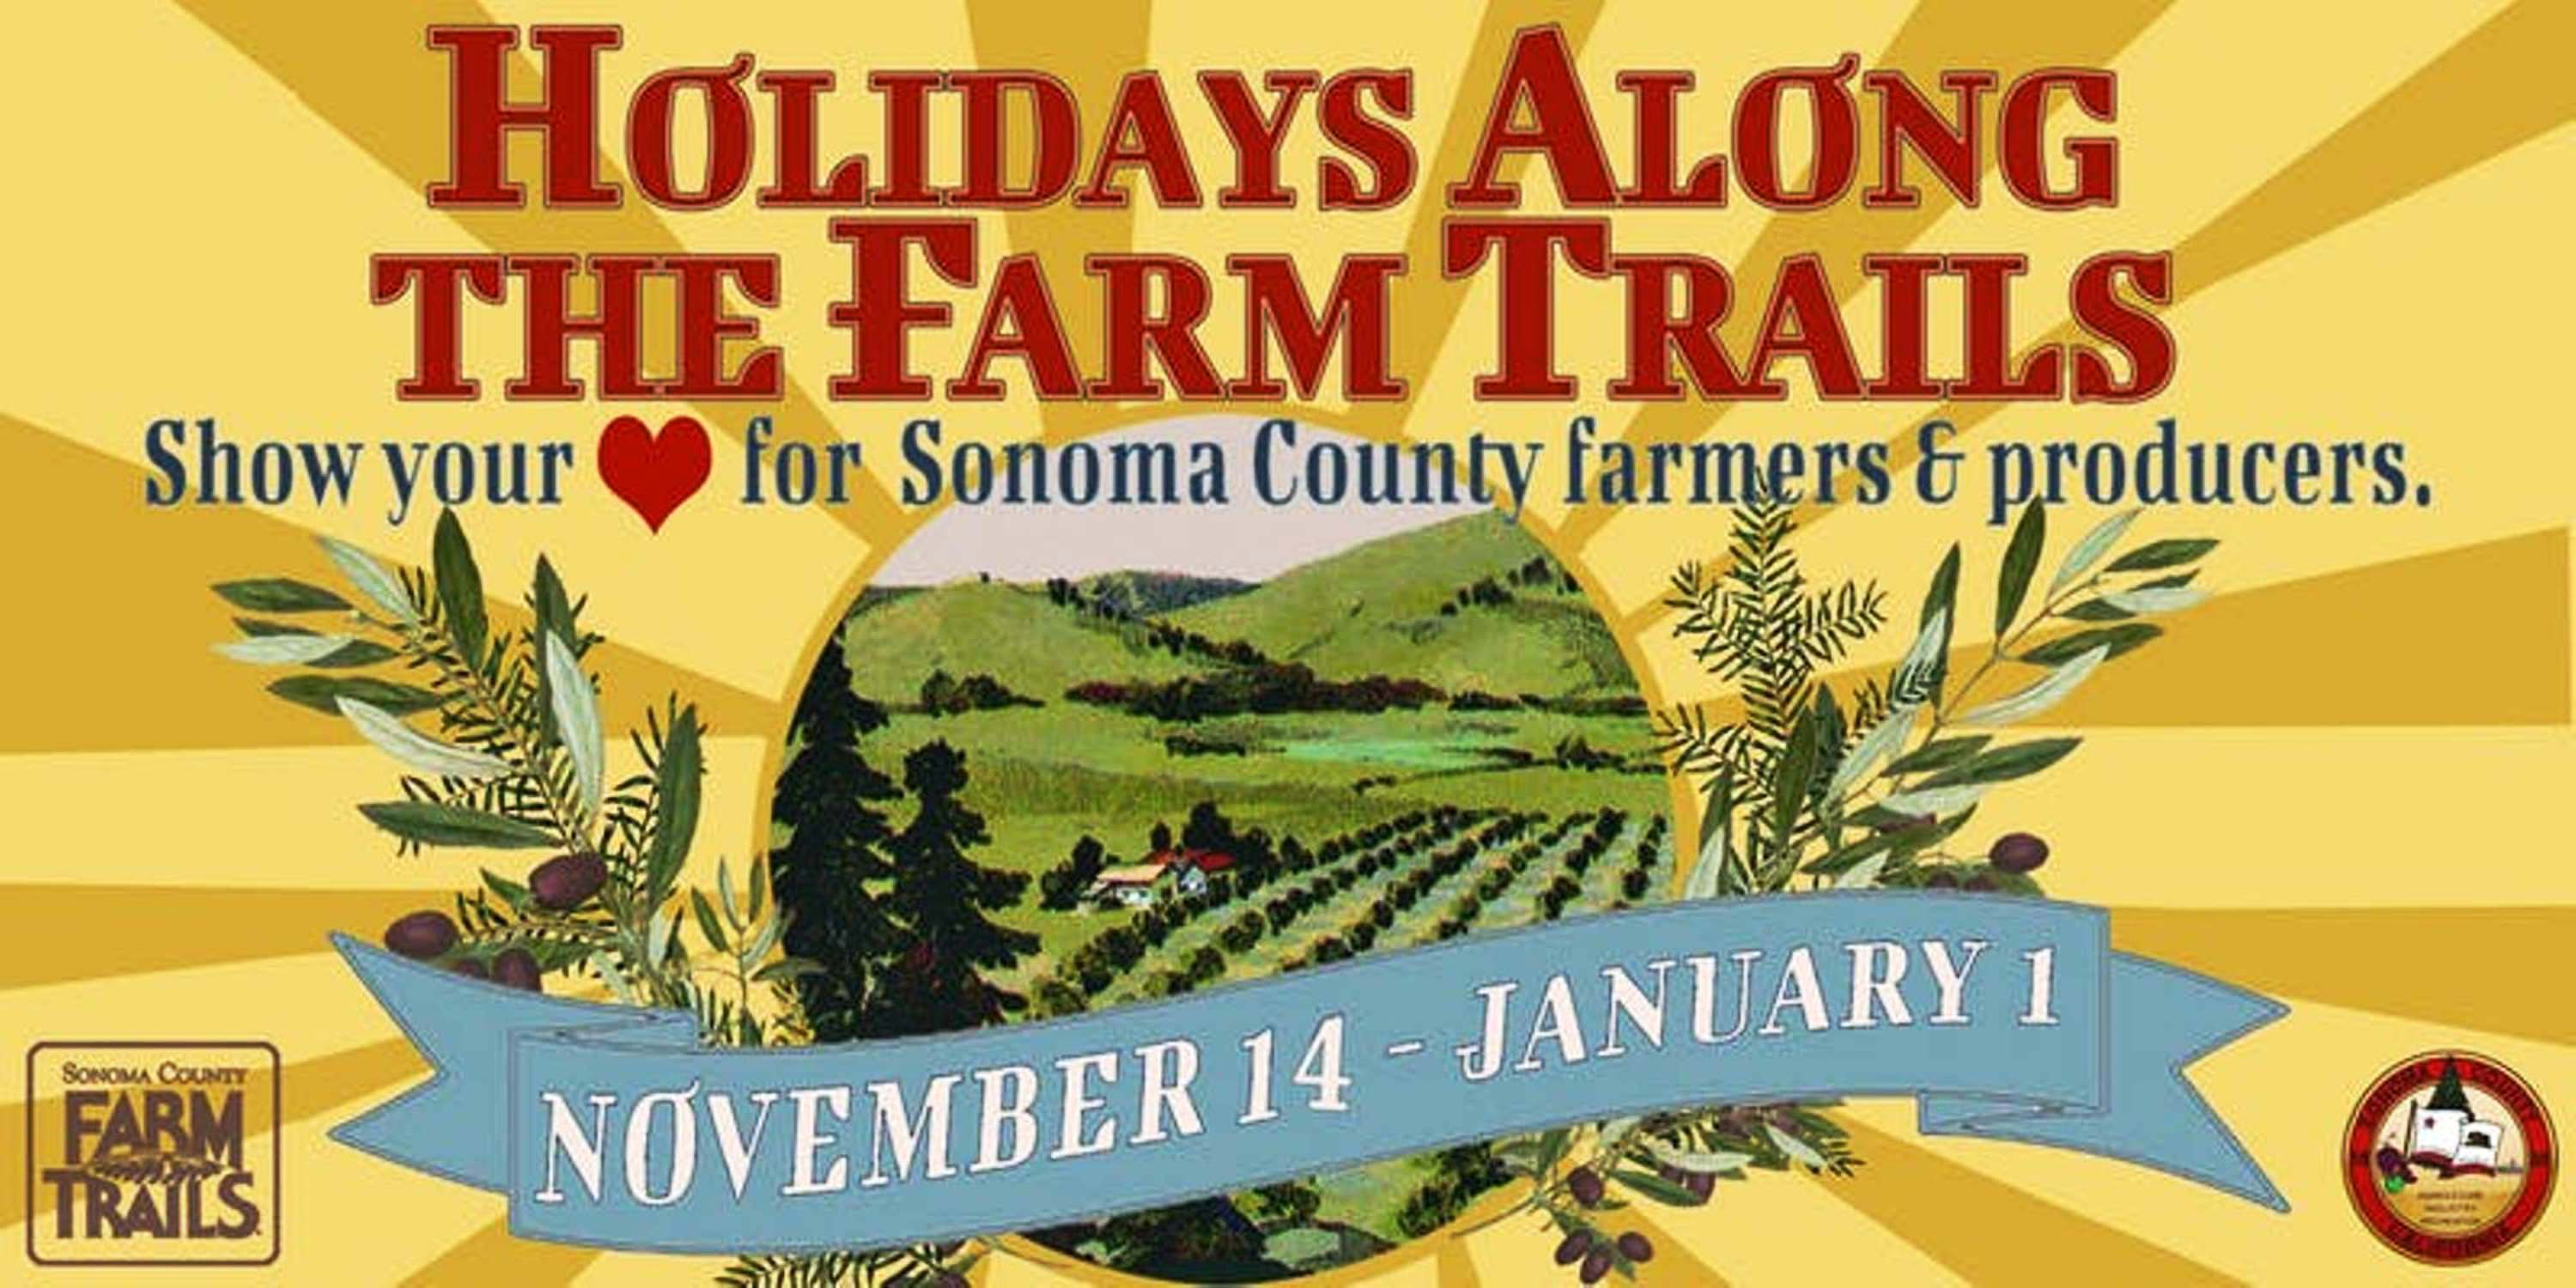 Holidays Along the Farm Trails, Sonoma County, California